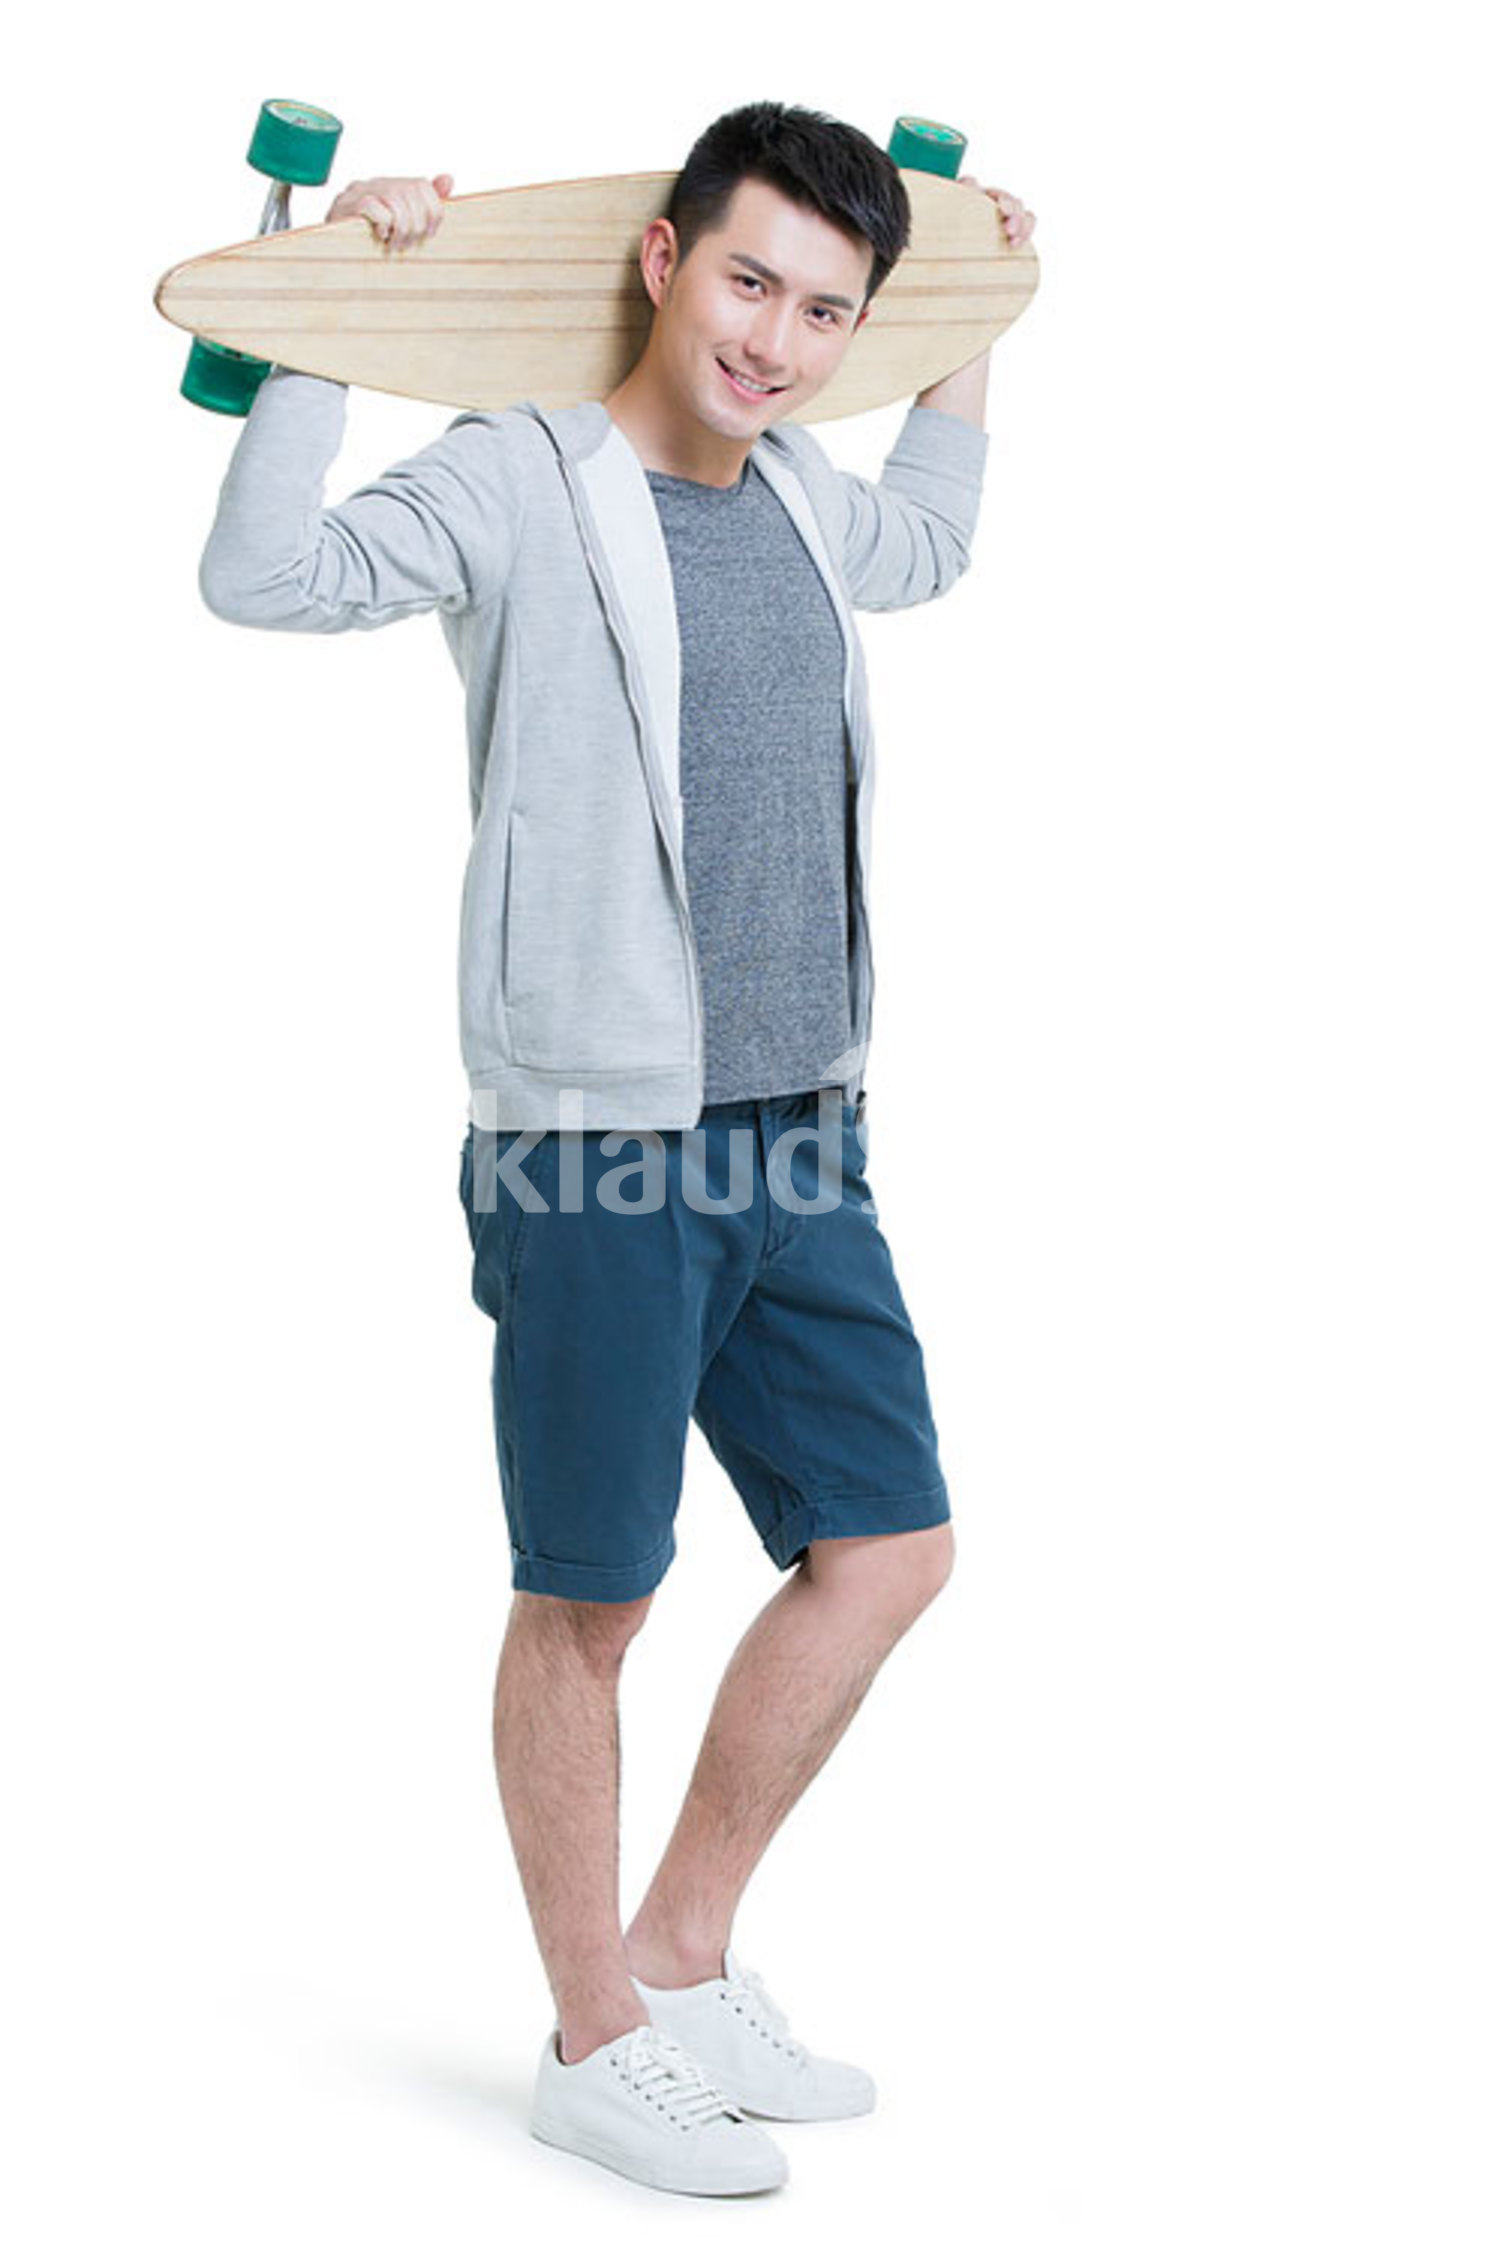 Happy young Chinese man holding a skateboard